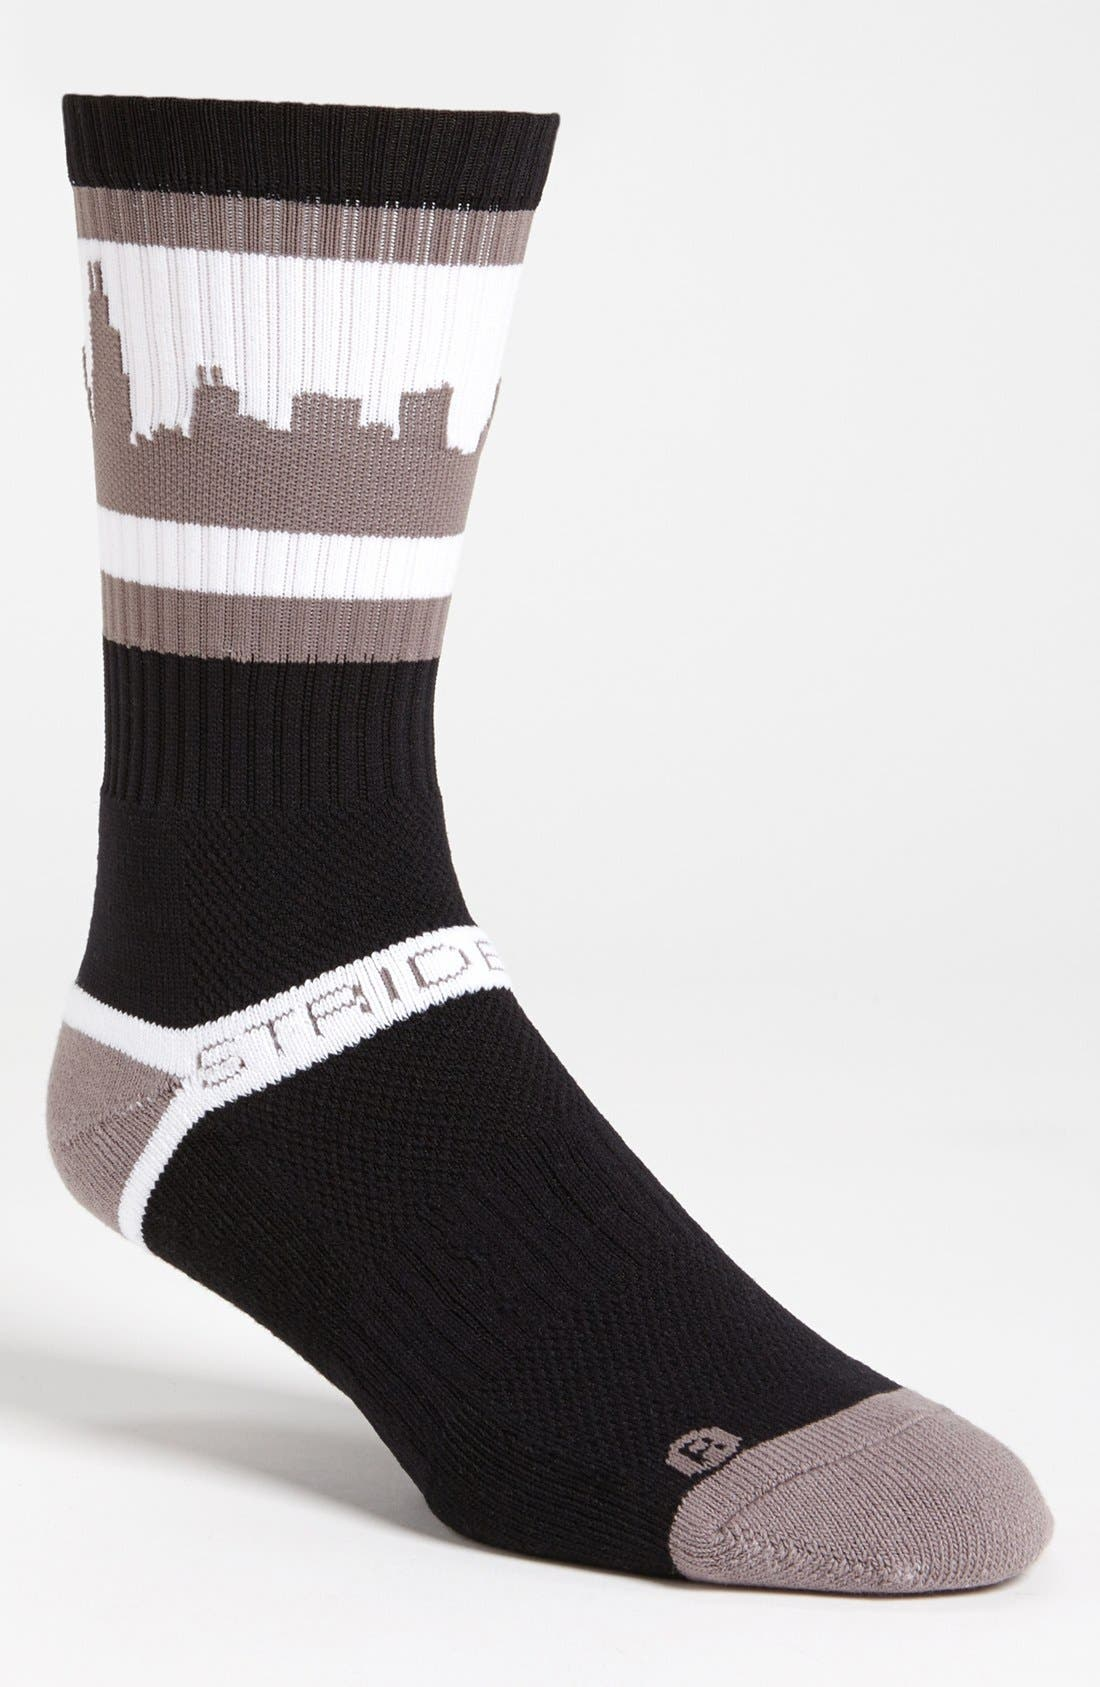 Main Image - STRIDELINE 'Chicago' Socks